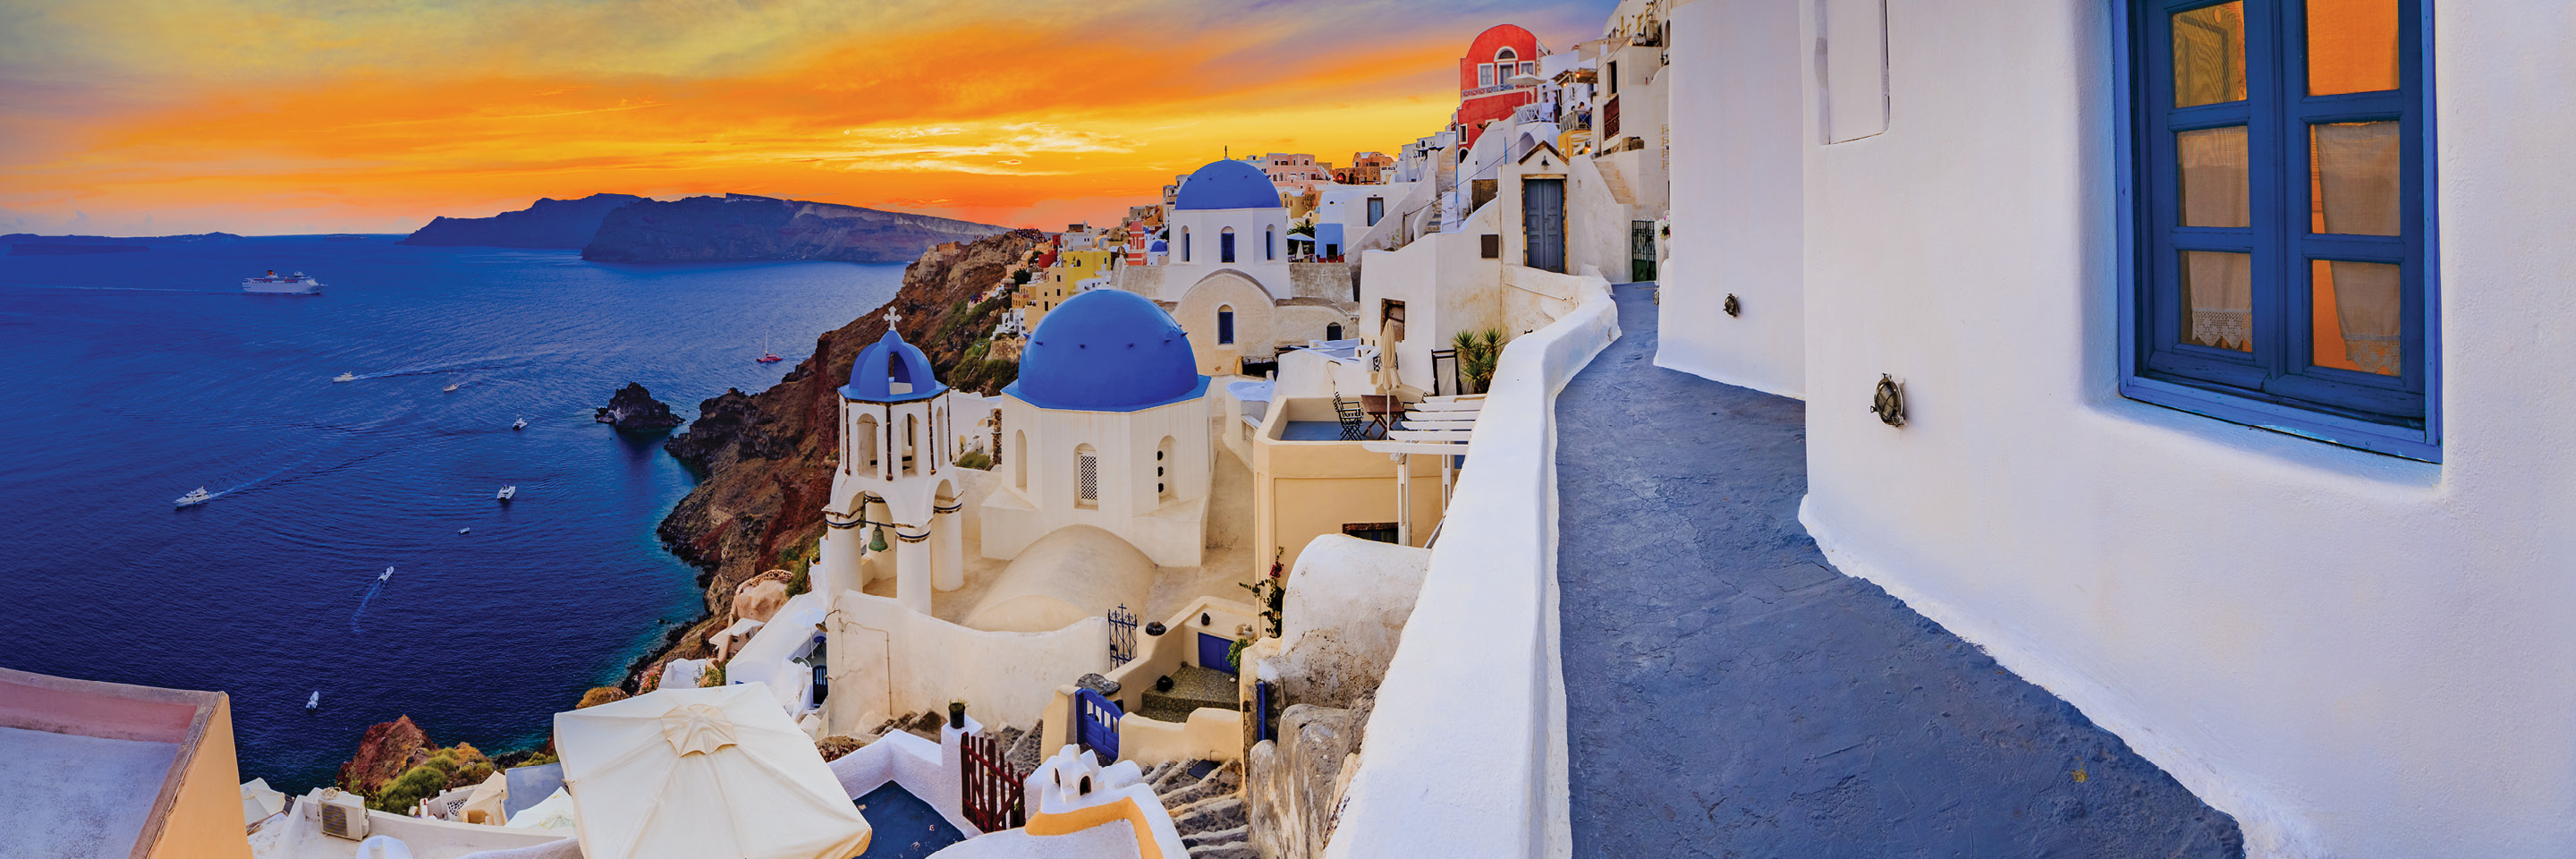 Italy & Greece with Iconic Aegean Islands Cruise